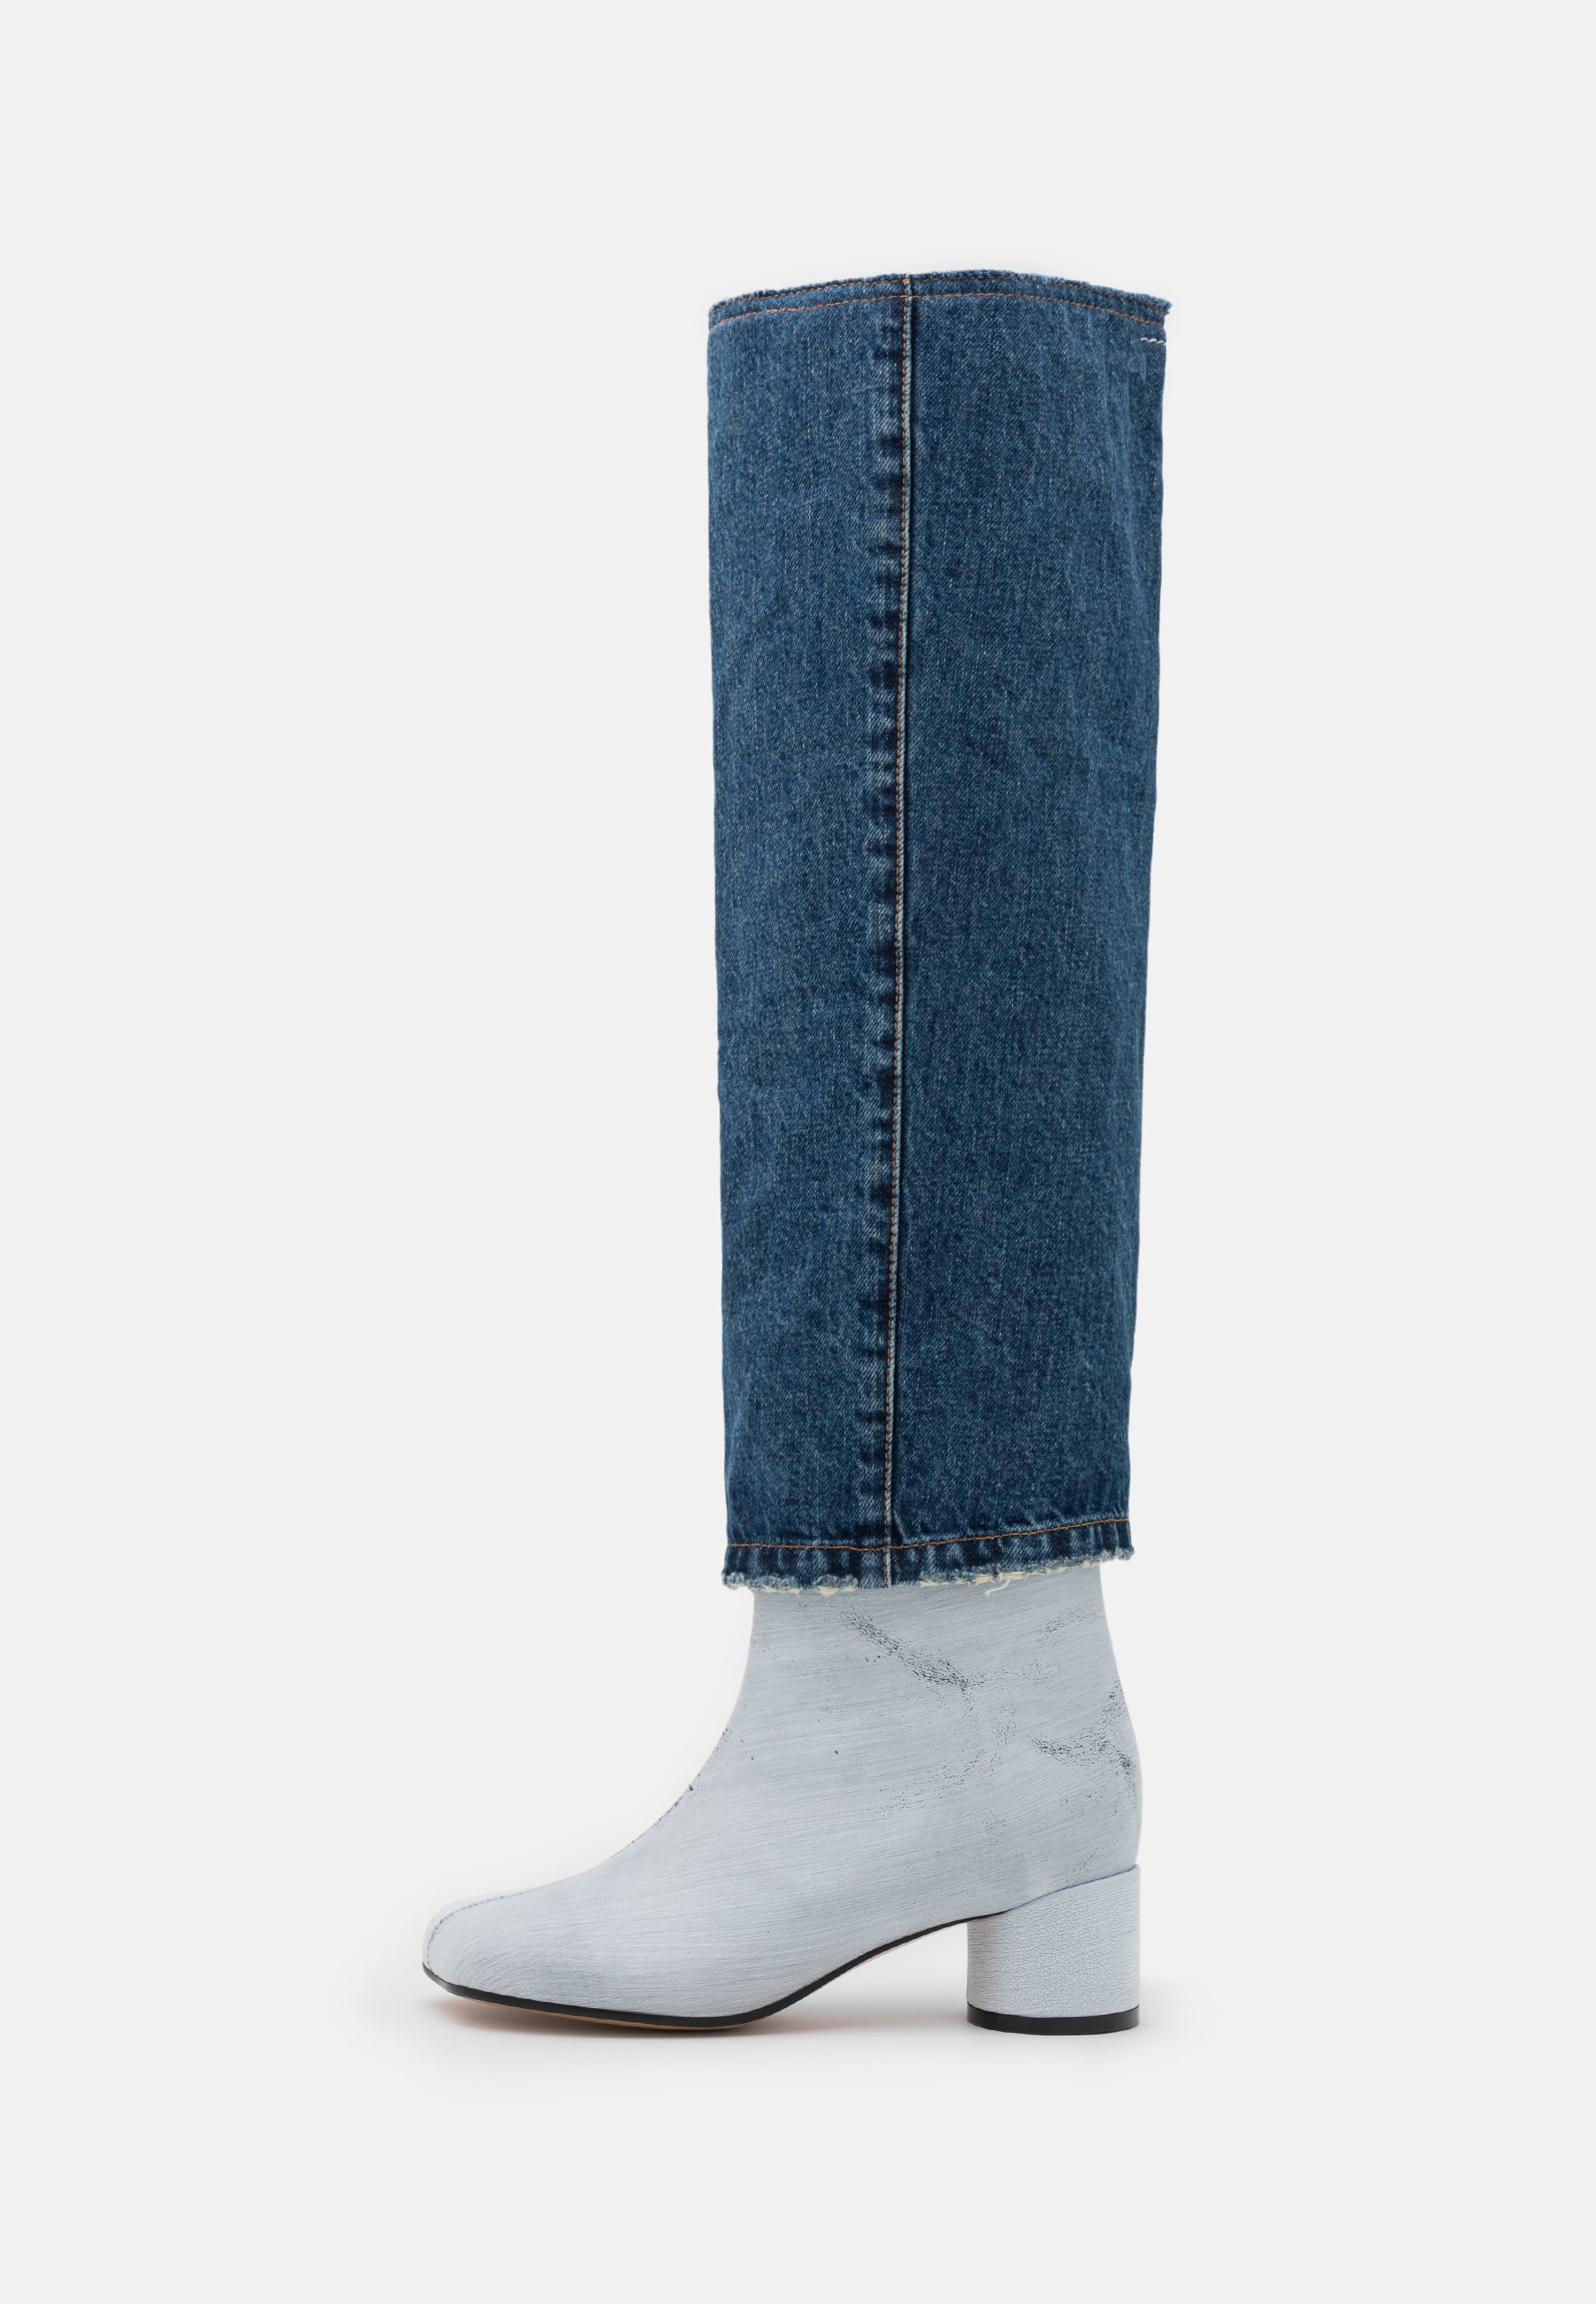 Women STIVALE - Over-the-knee boots